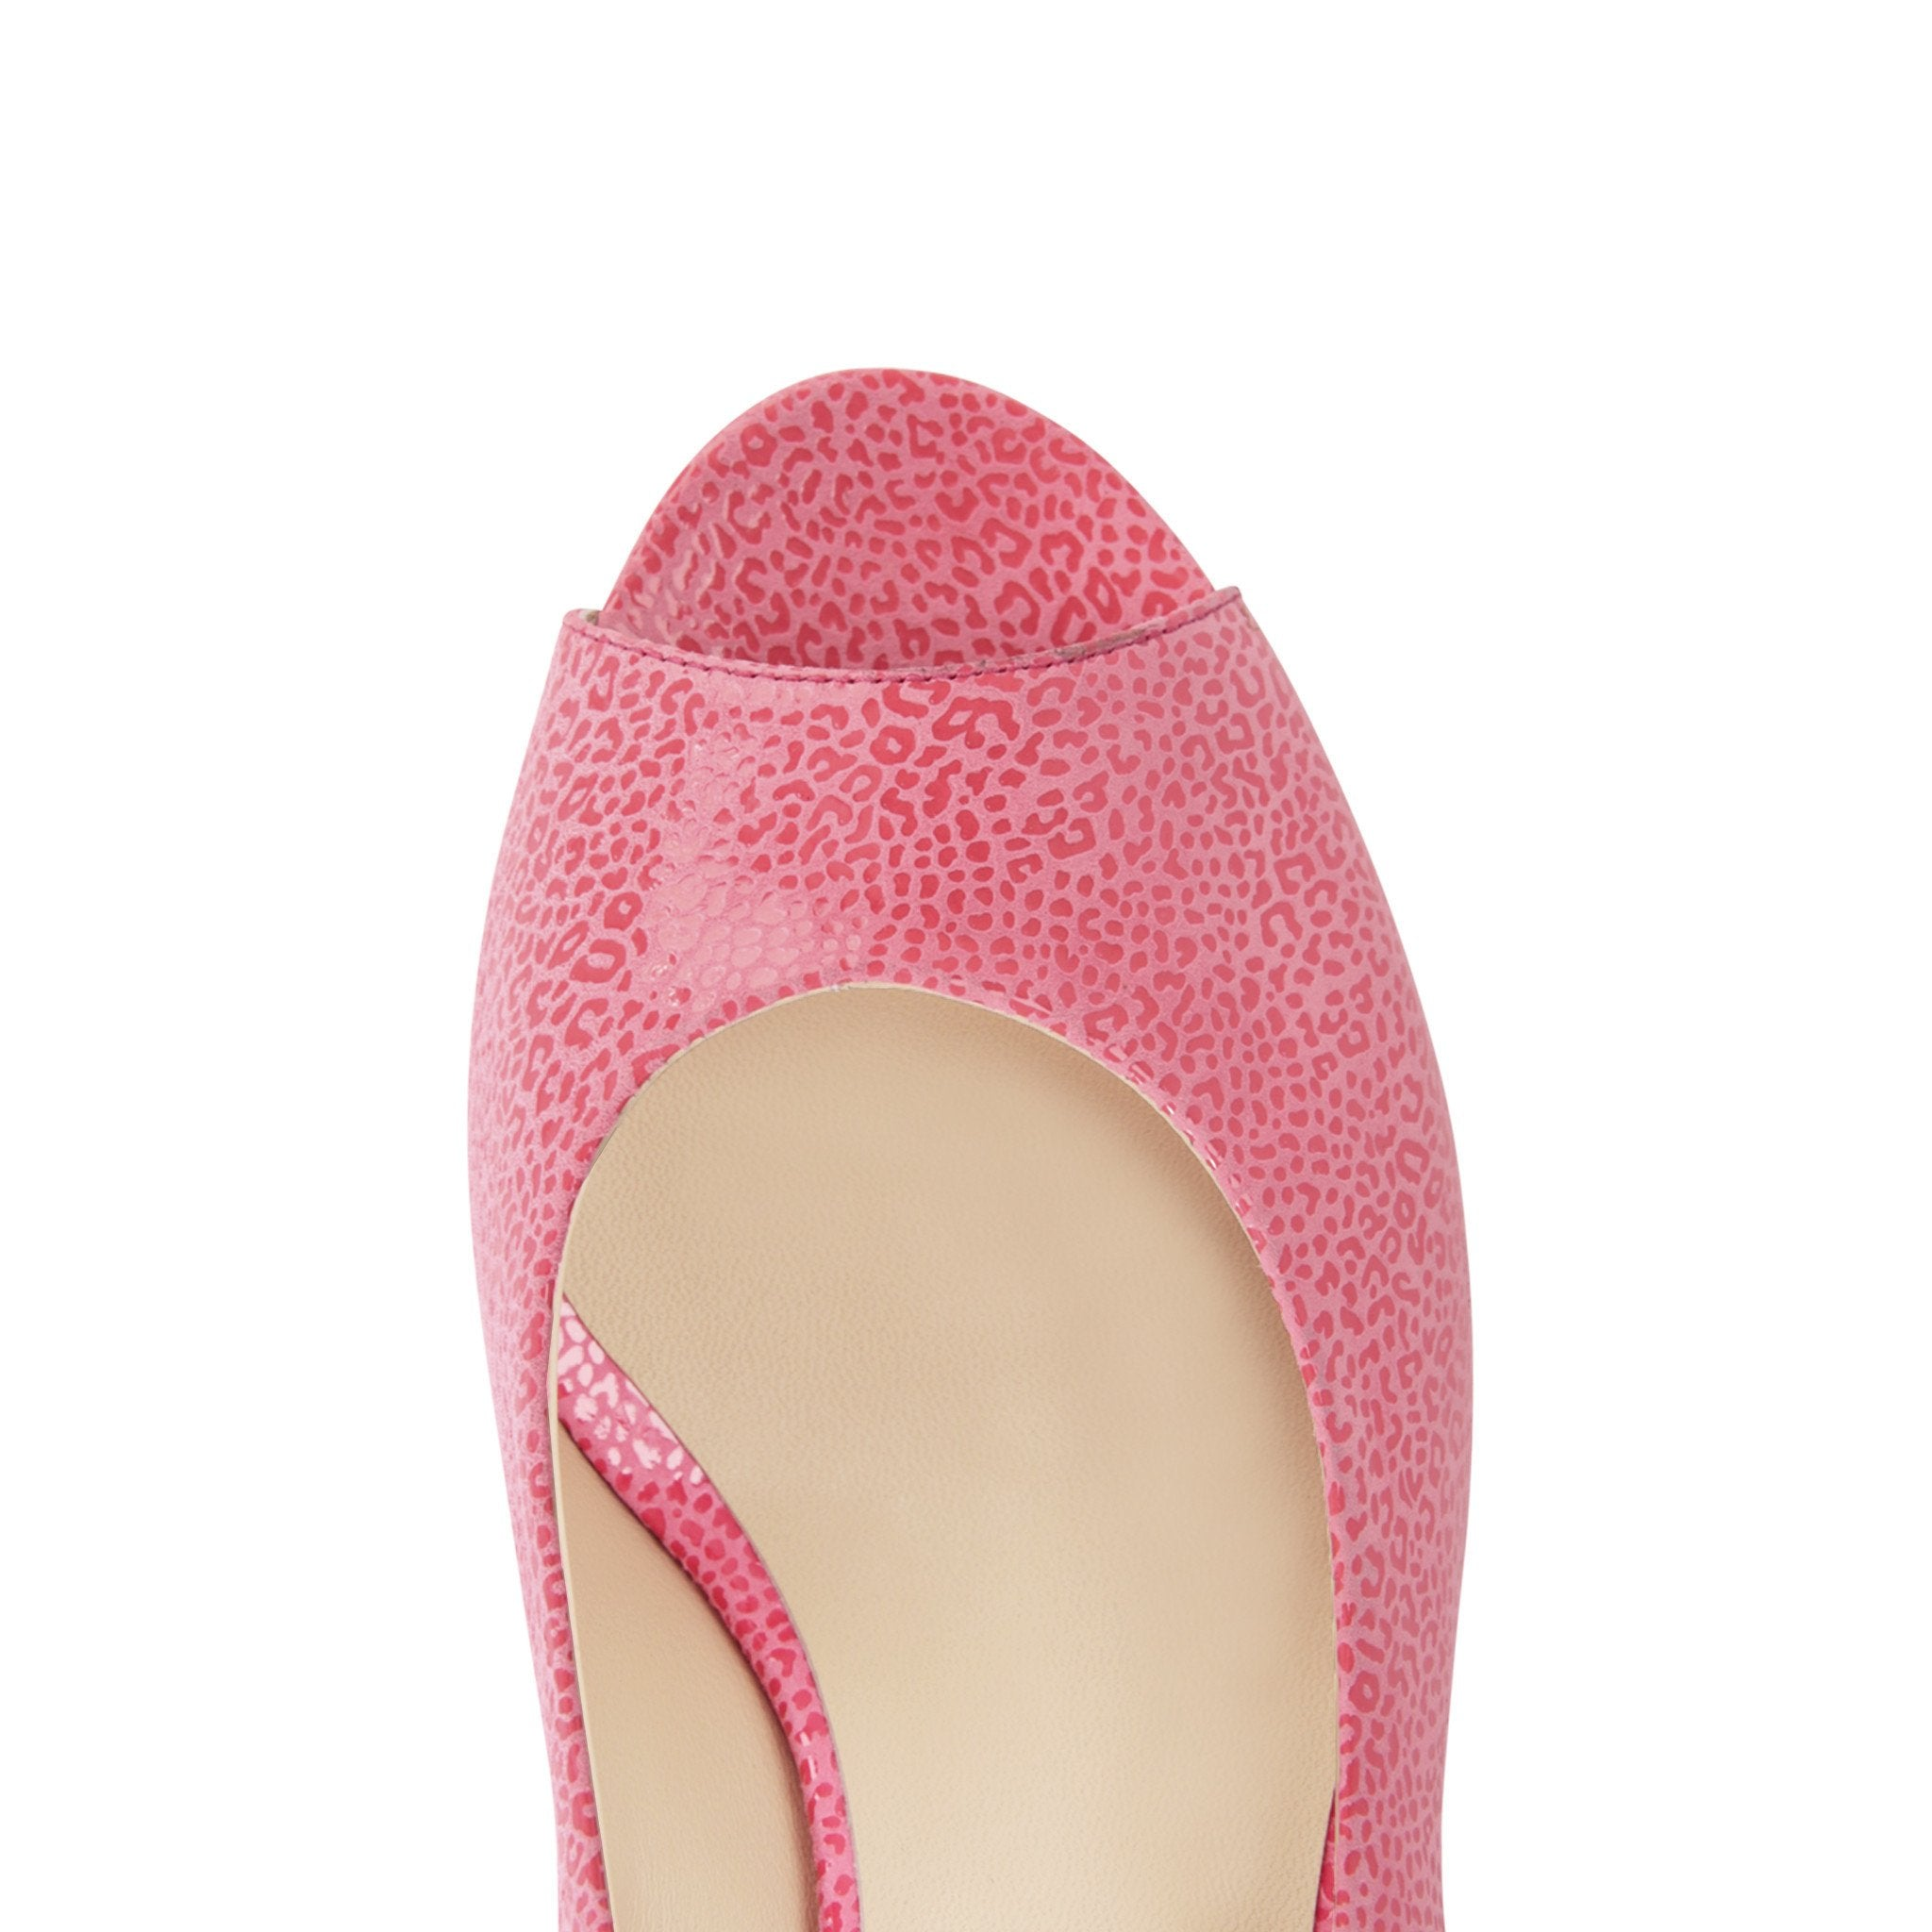 SARDINIA - Savannah Epiphany Pink, VIAJIYU - Women's Hand Made Sustainable Luxury Shoes. Made in Italy. Made to Order.